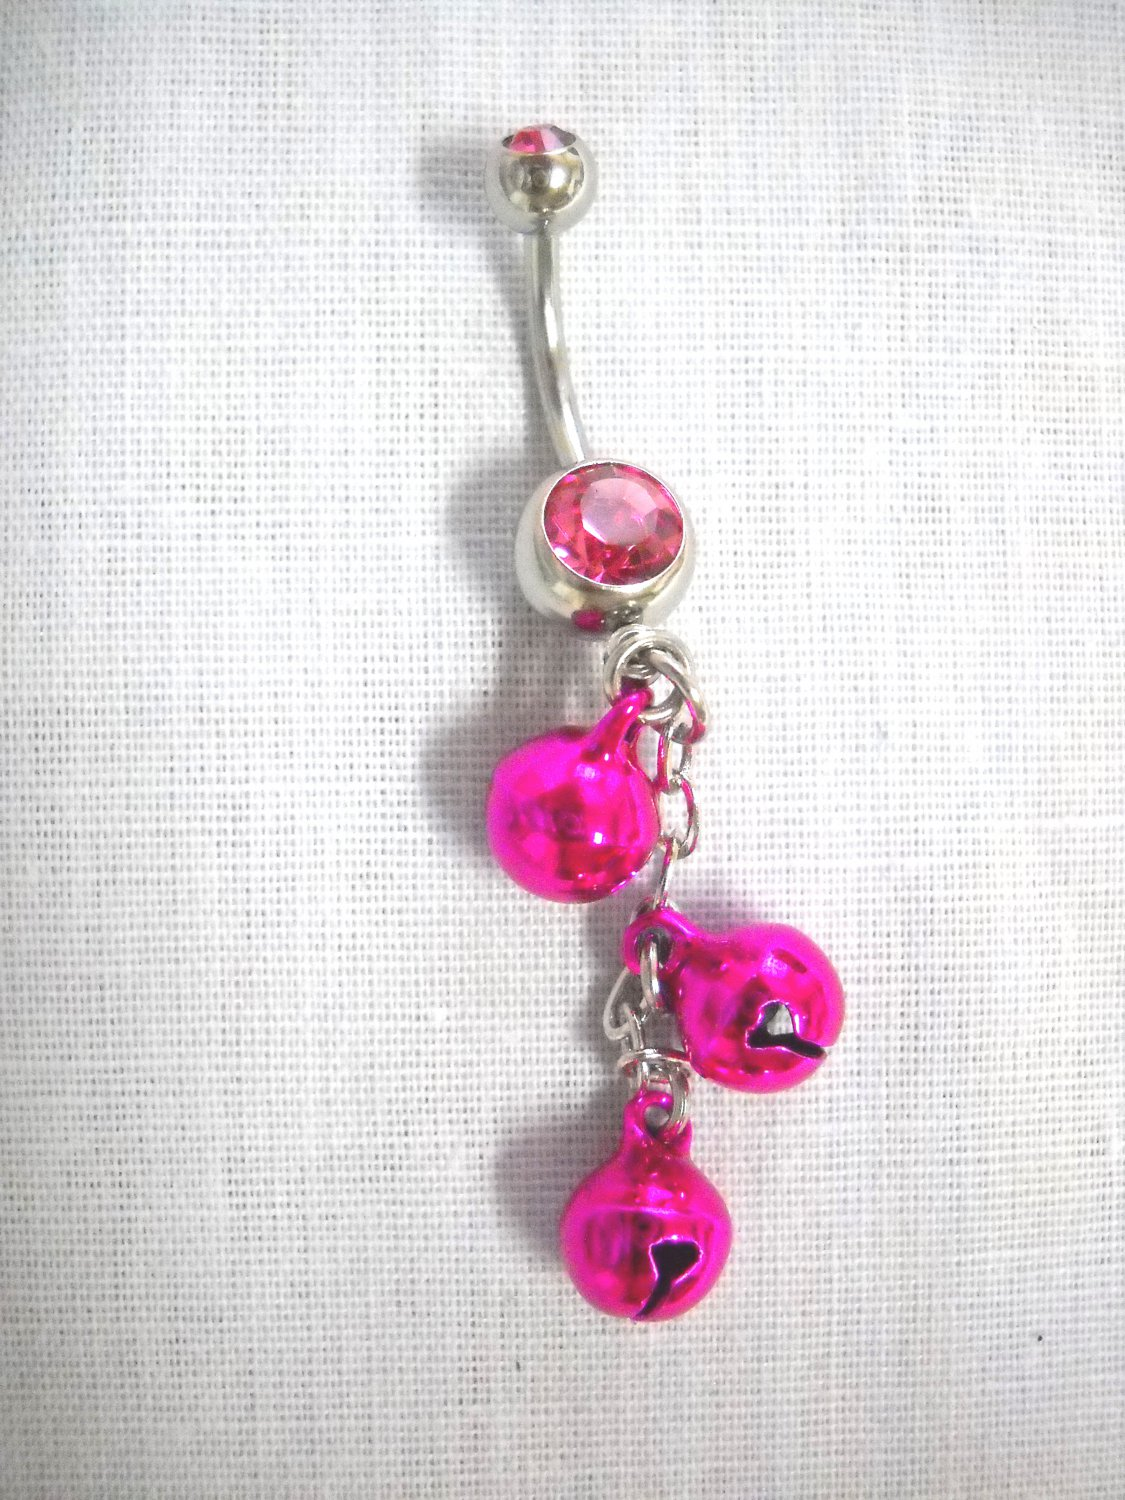 NEW BOLLYWOOD DANCE FUSCIA PINK DANGLING JINGLE BELLS ON HOT PINK 14g CZ BELLY RING